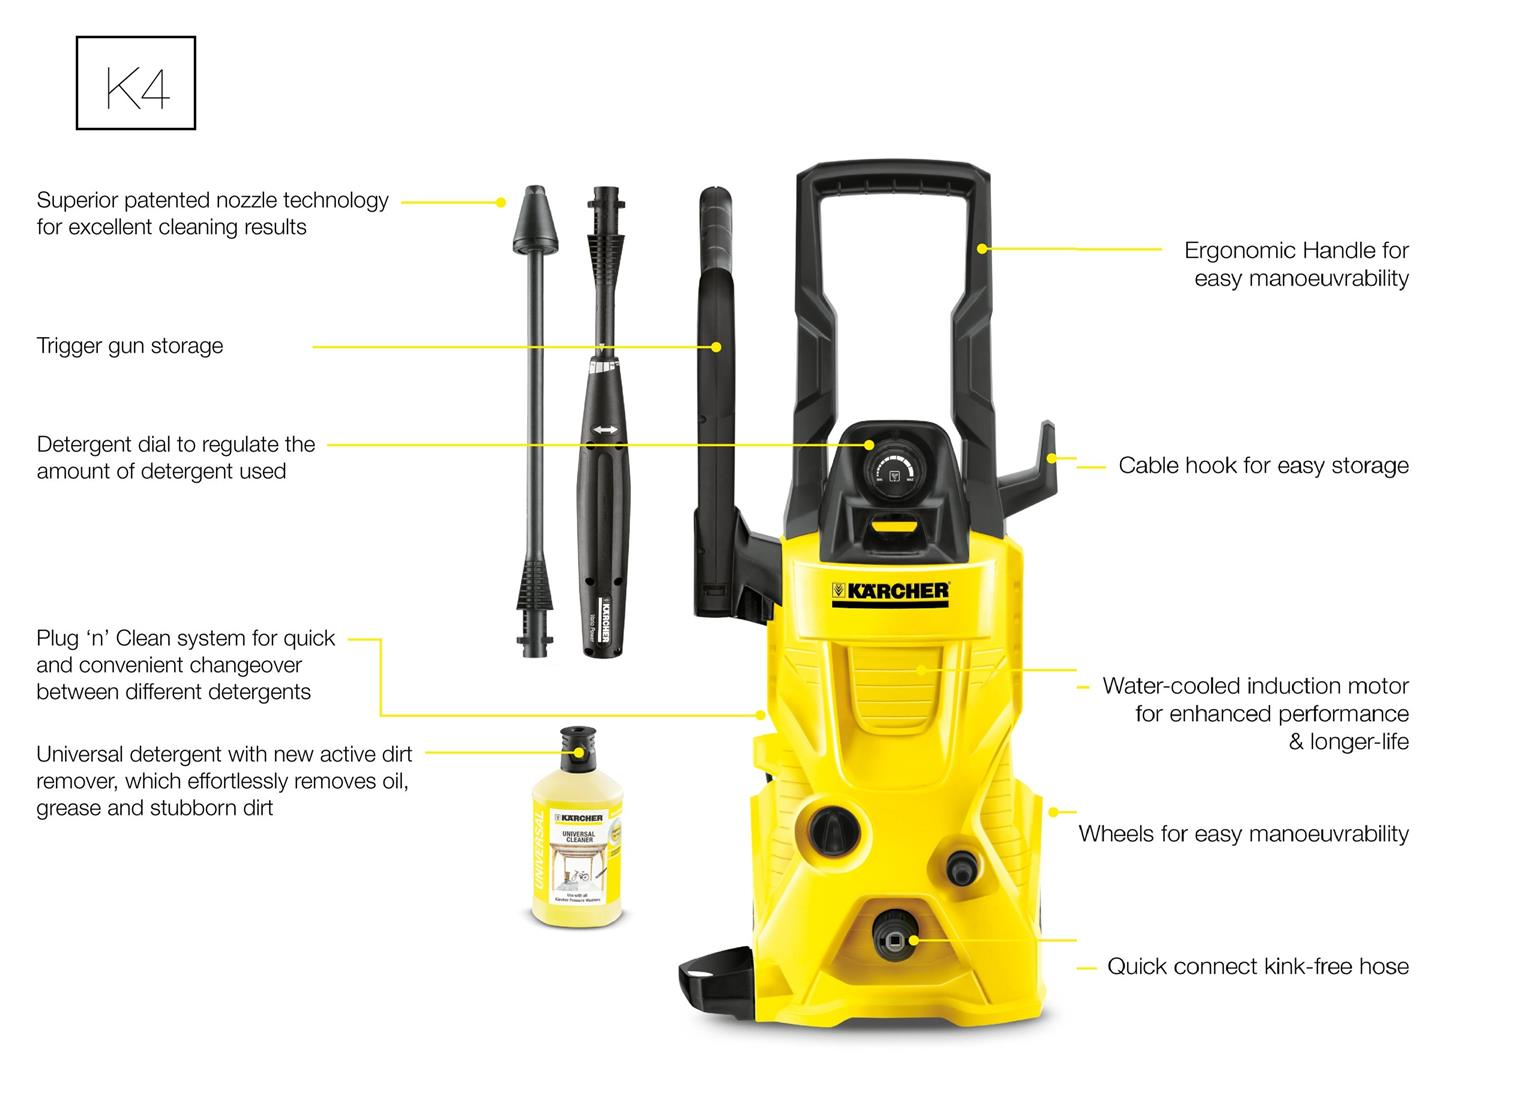 Karcher k4 premium high press end 9 3 2018 1 14 pm - Karcher k4 600 ...